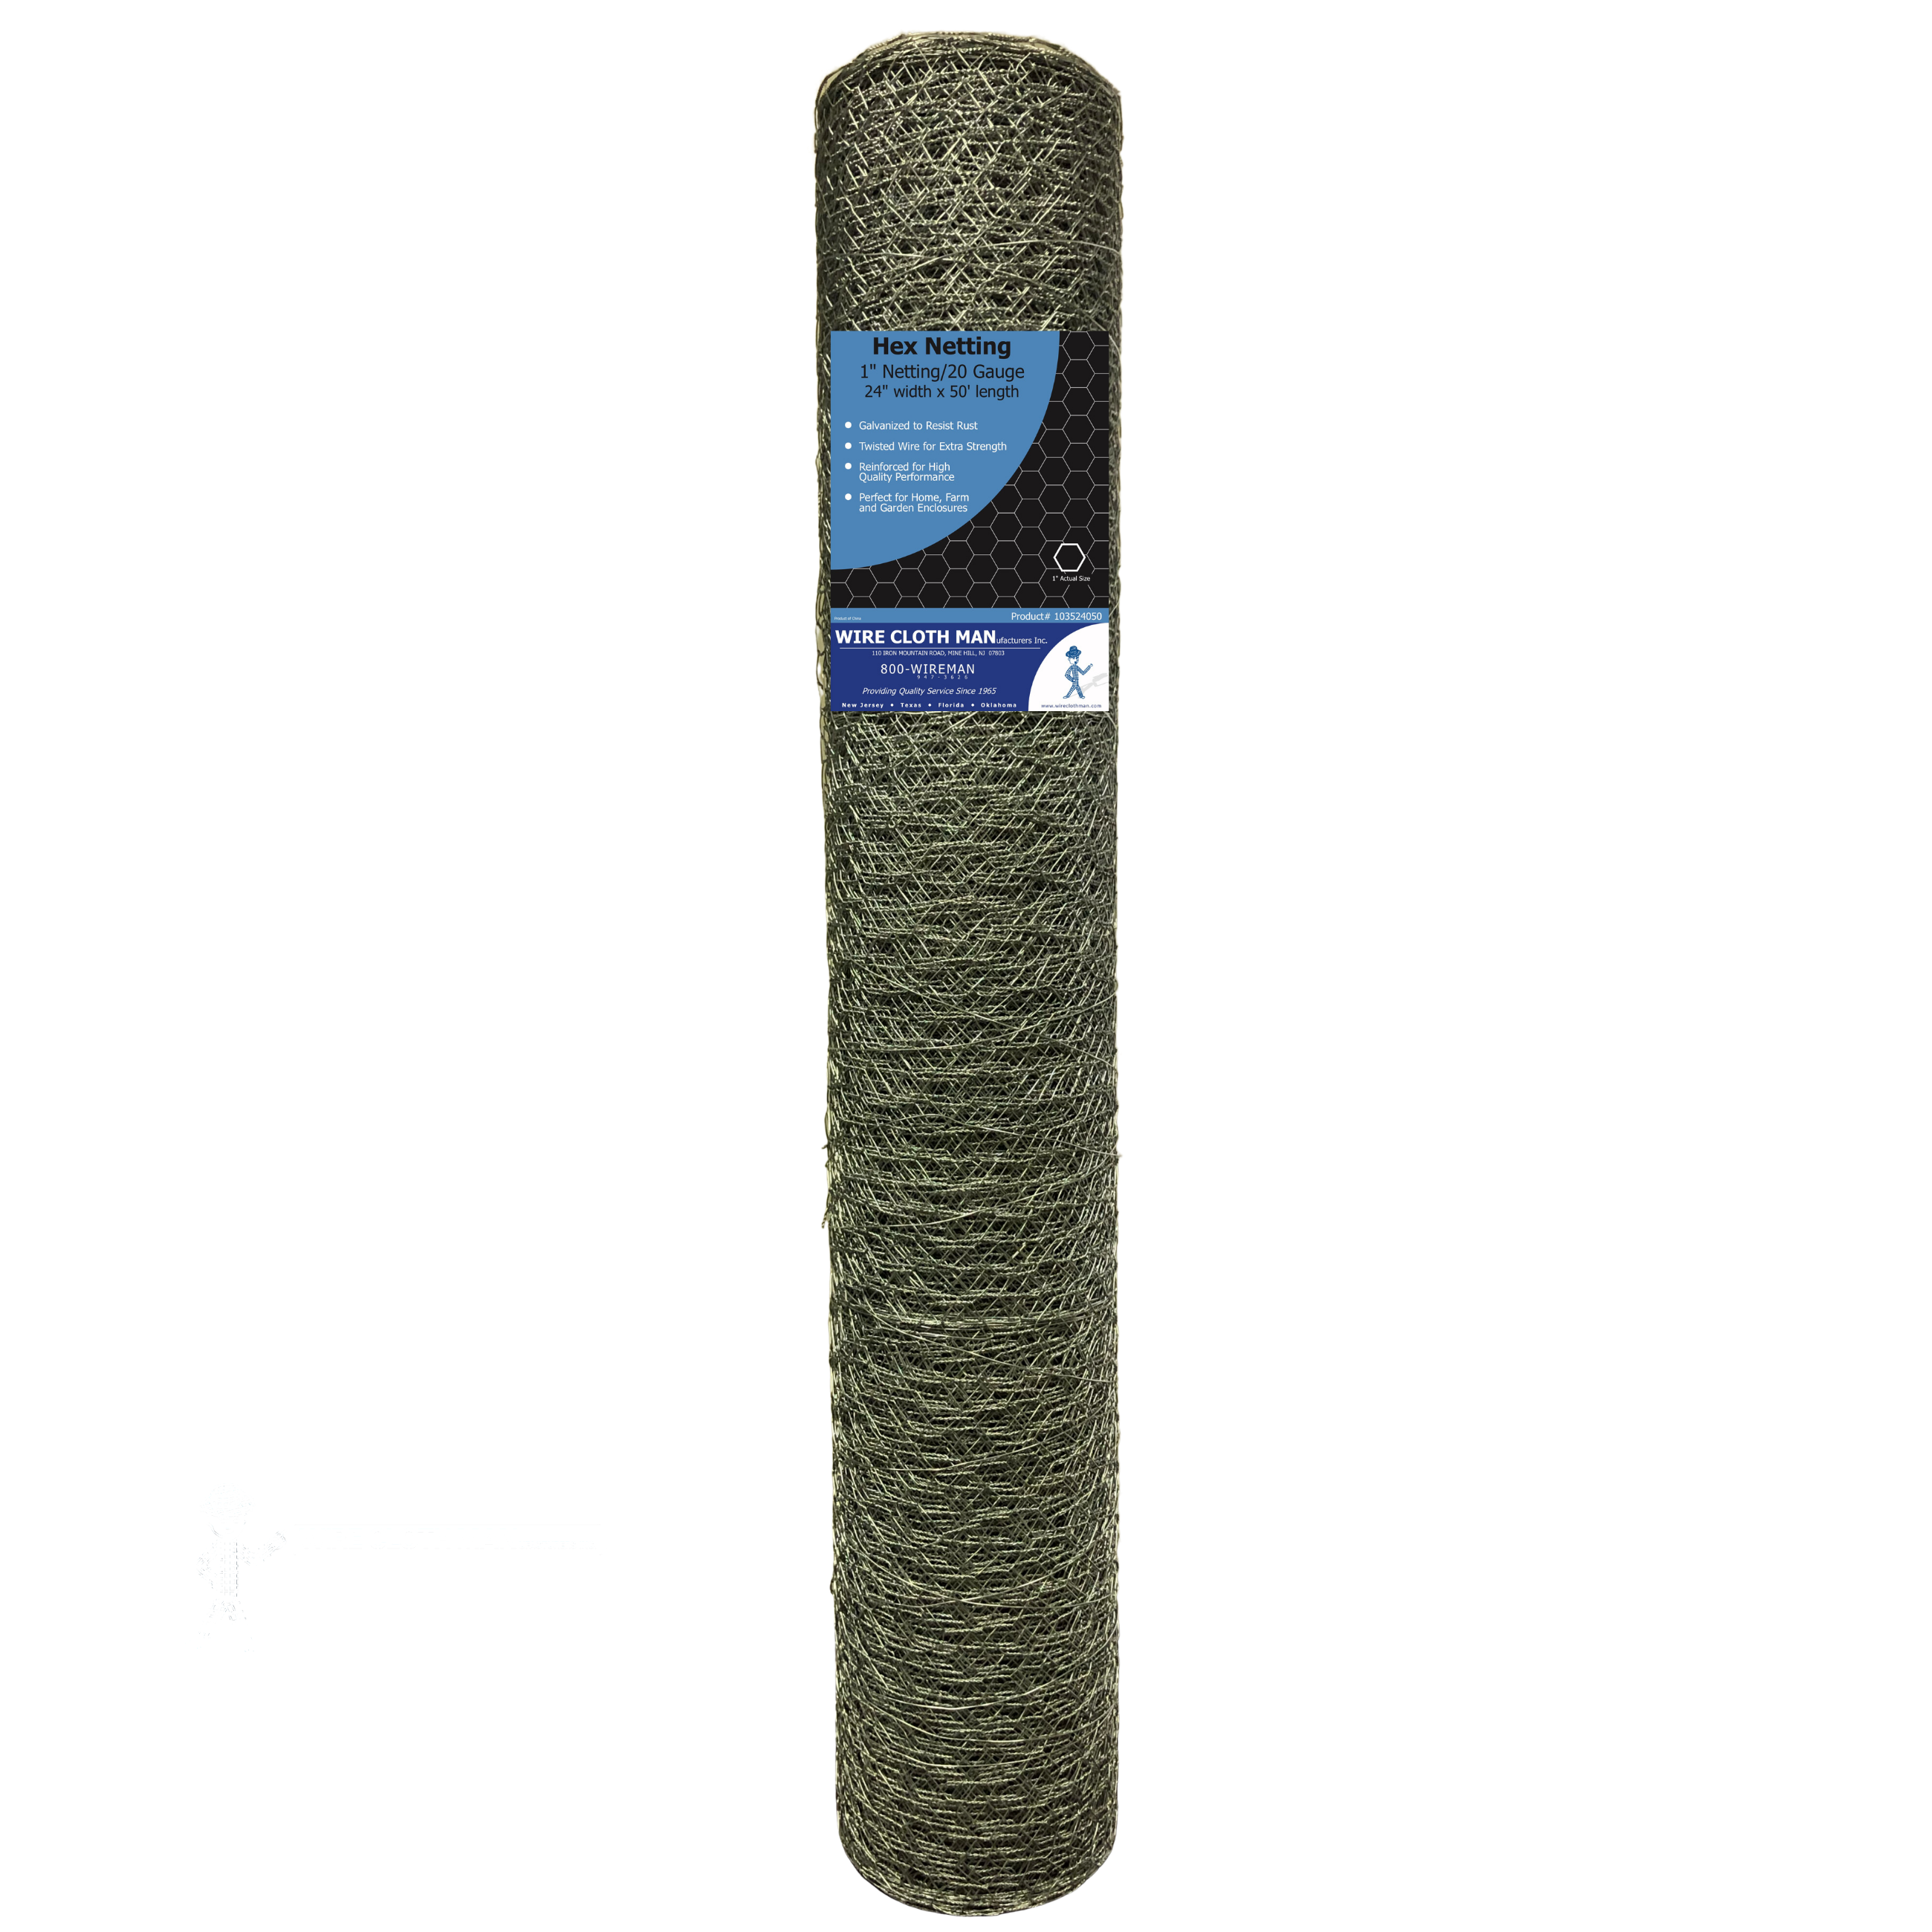 Hex Netting 24X50 Roll